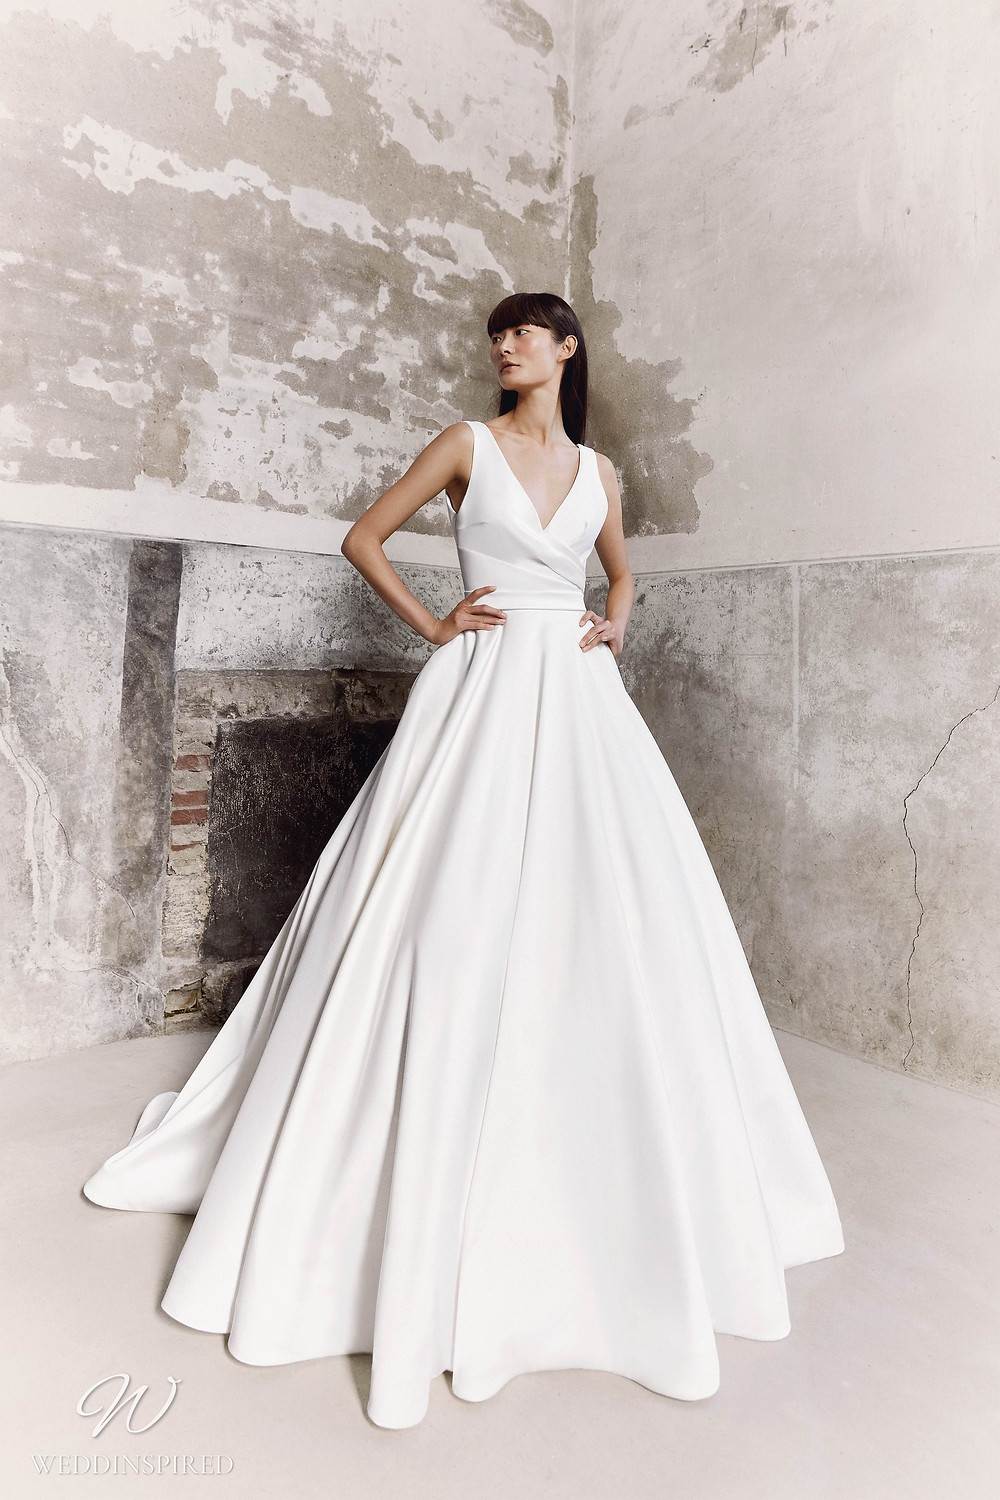 A Viktor & Rolf Fall/Winter 2021 simple satin ball gown wedding dress with straps and a v neckline